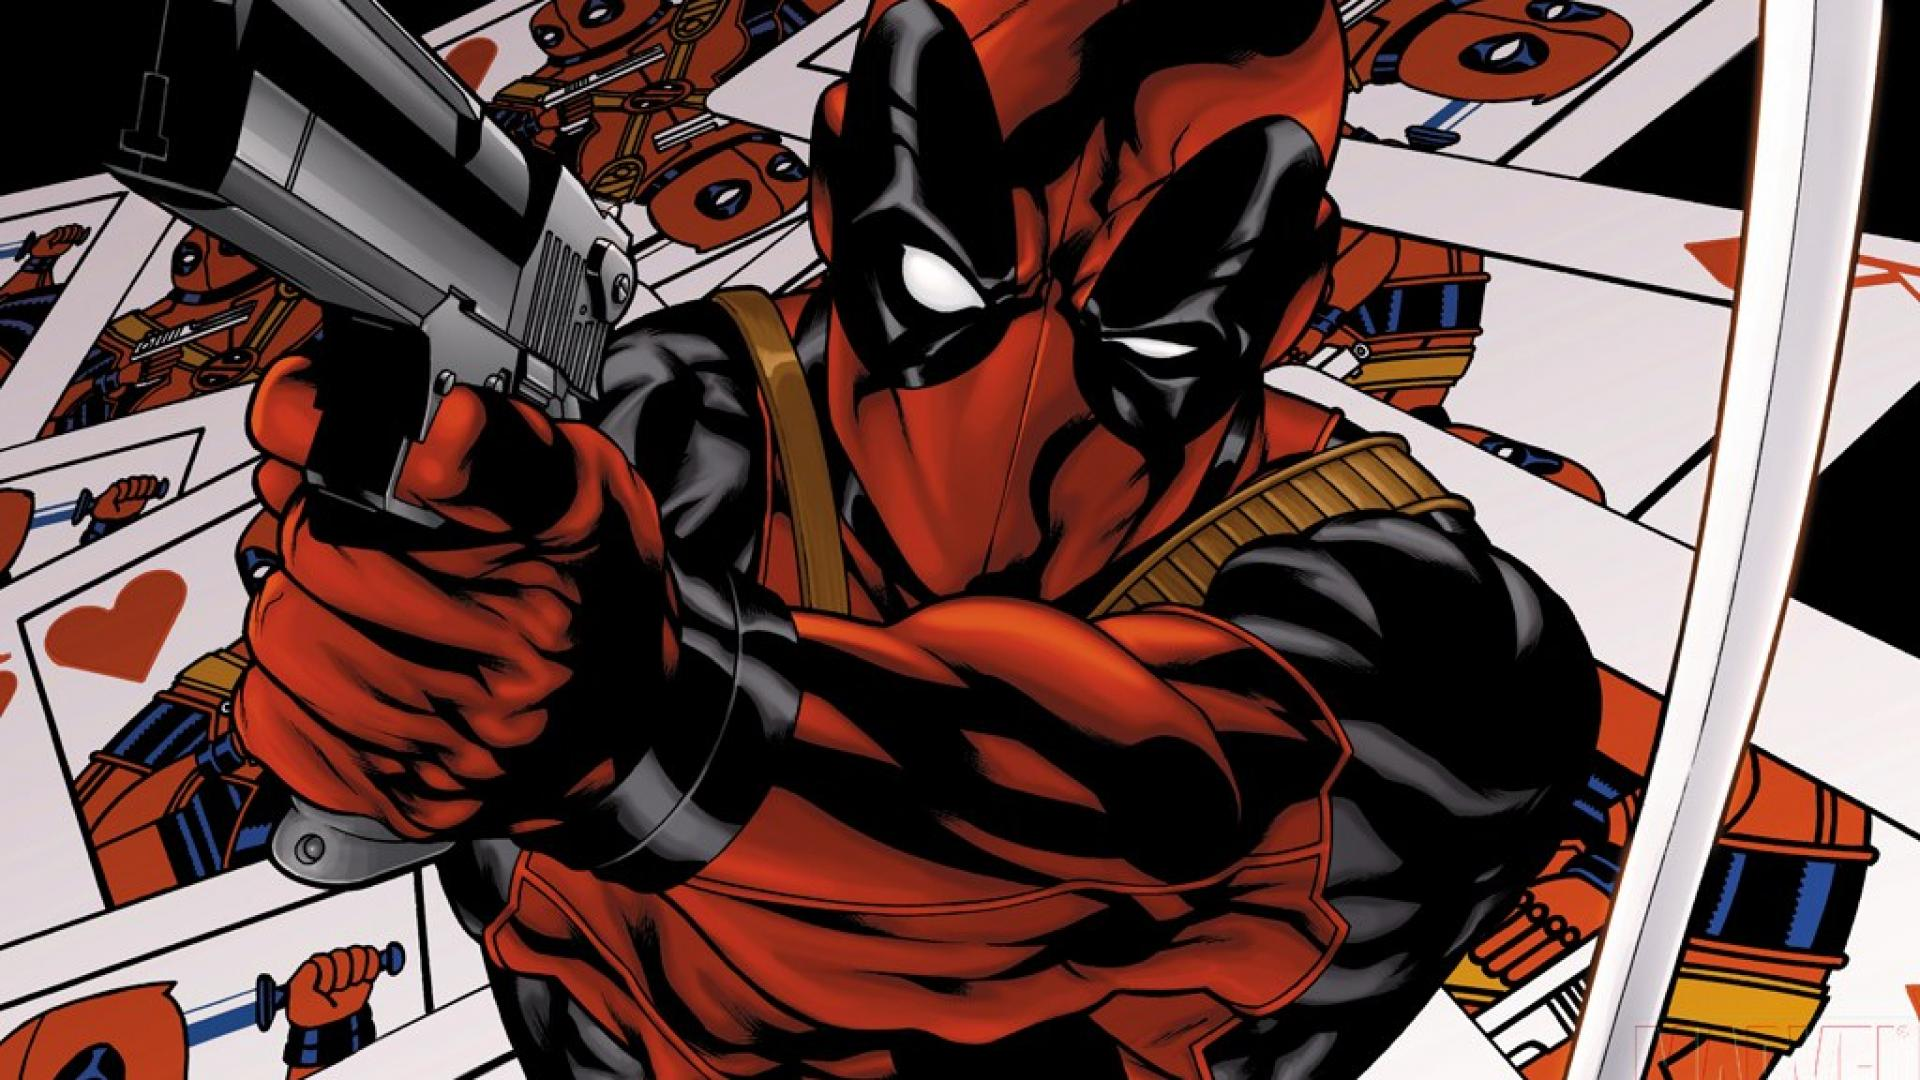 Deadpool Deadpool Video Walkthrough